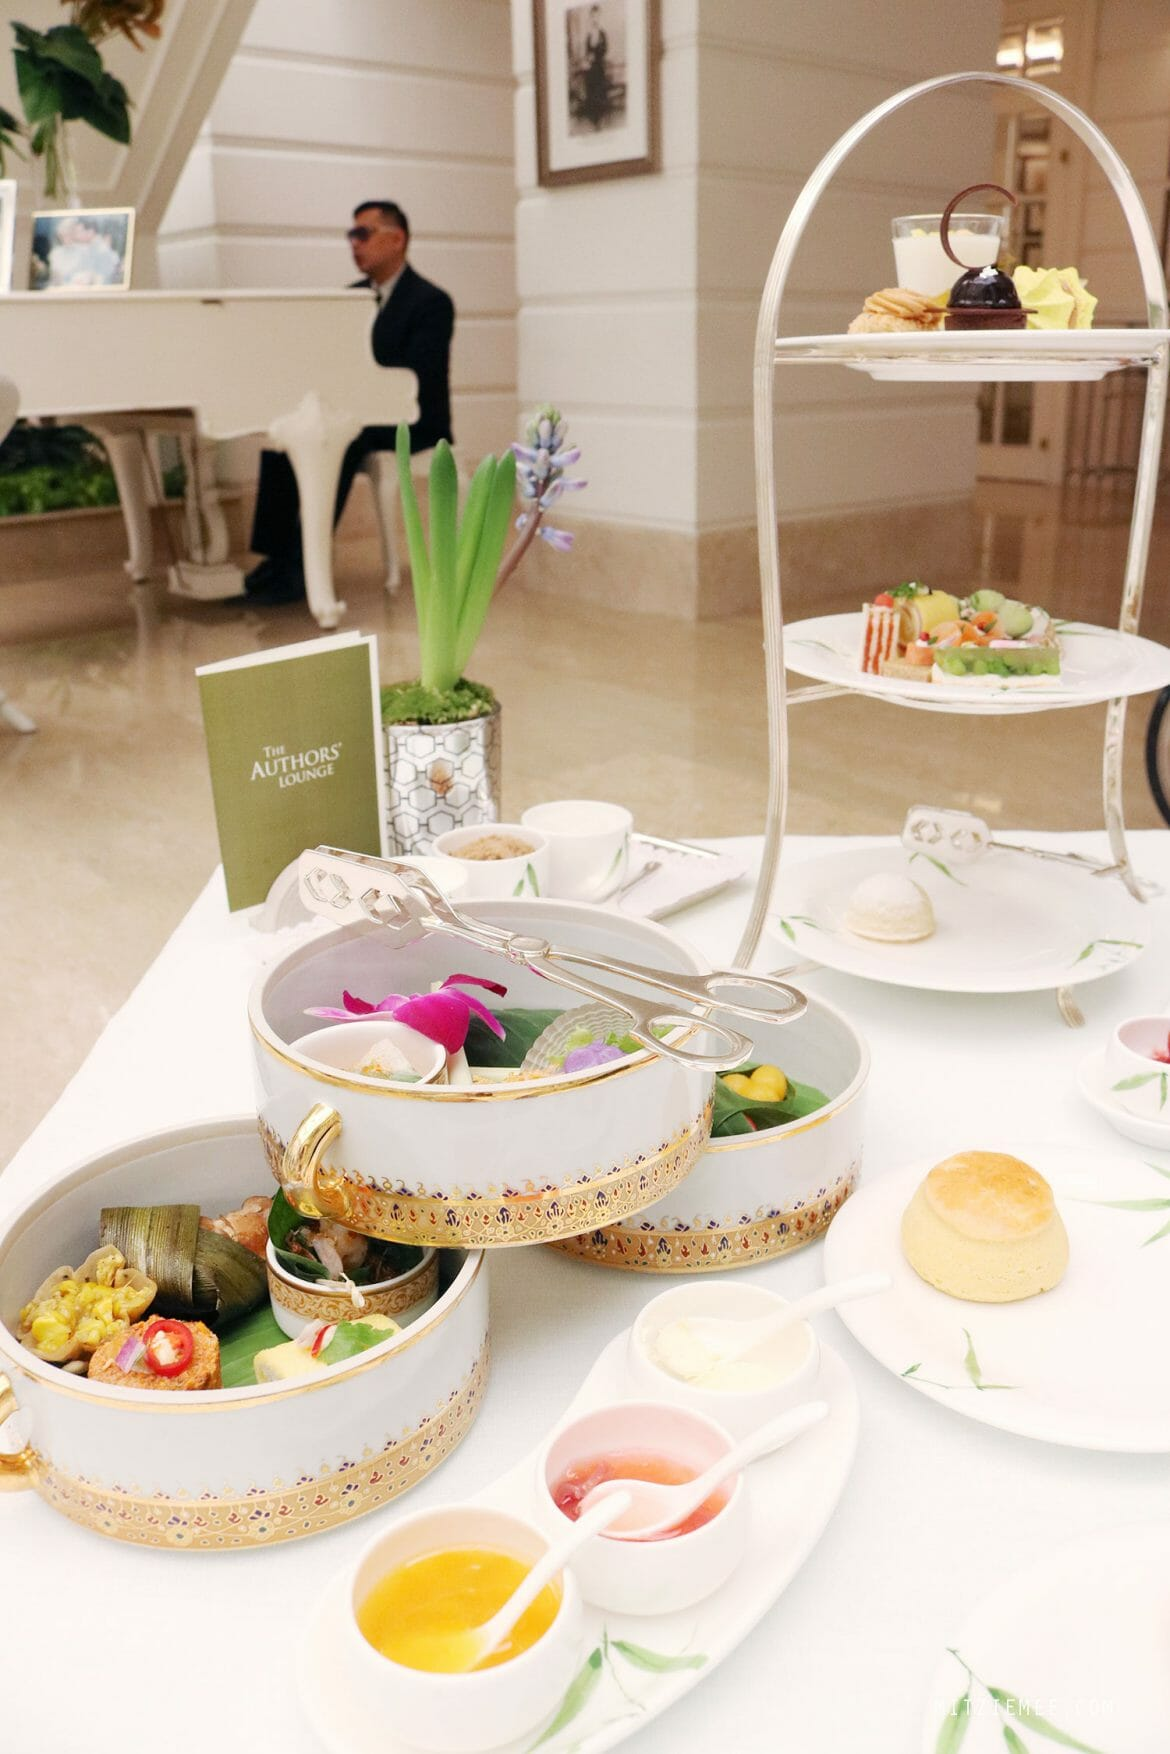 Afternoon Tea at the Authors' Lounge, Mandarin Oriental Bangkok